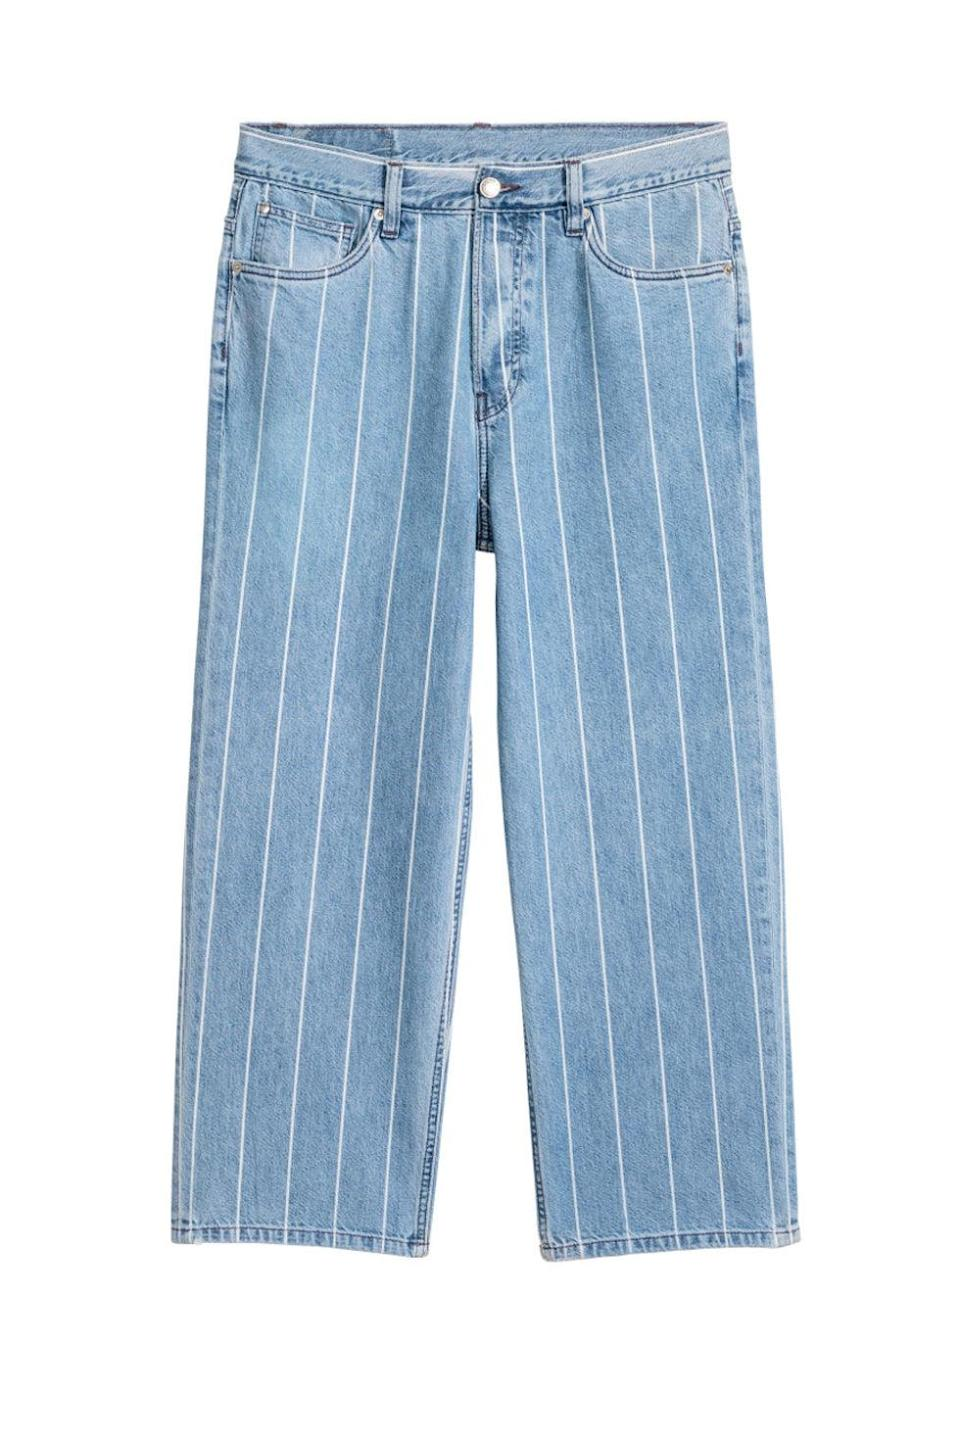 """<p>From the high-street behemoth's unisex collection, these are skater-ish and pinstriped and made for hanging off one's hips. </p><p><strong>BUY IT:</strong> H&M, $40; <a href=""""http://www.hm.com/us/product/62360?article=62360-B"""" rel=""""nofollow noopener"""" target=""""_blank"""" data-ylk=""""slk:hm.com"""" class=""""link rapid-noclick-resp"""">hm.com</a>.</p>"""